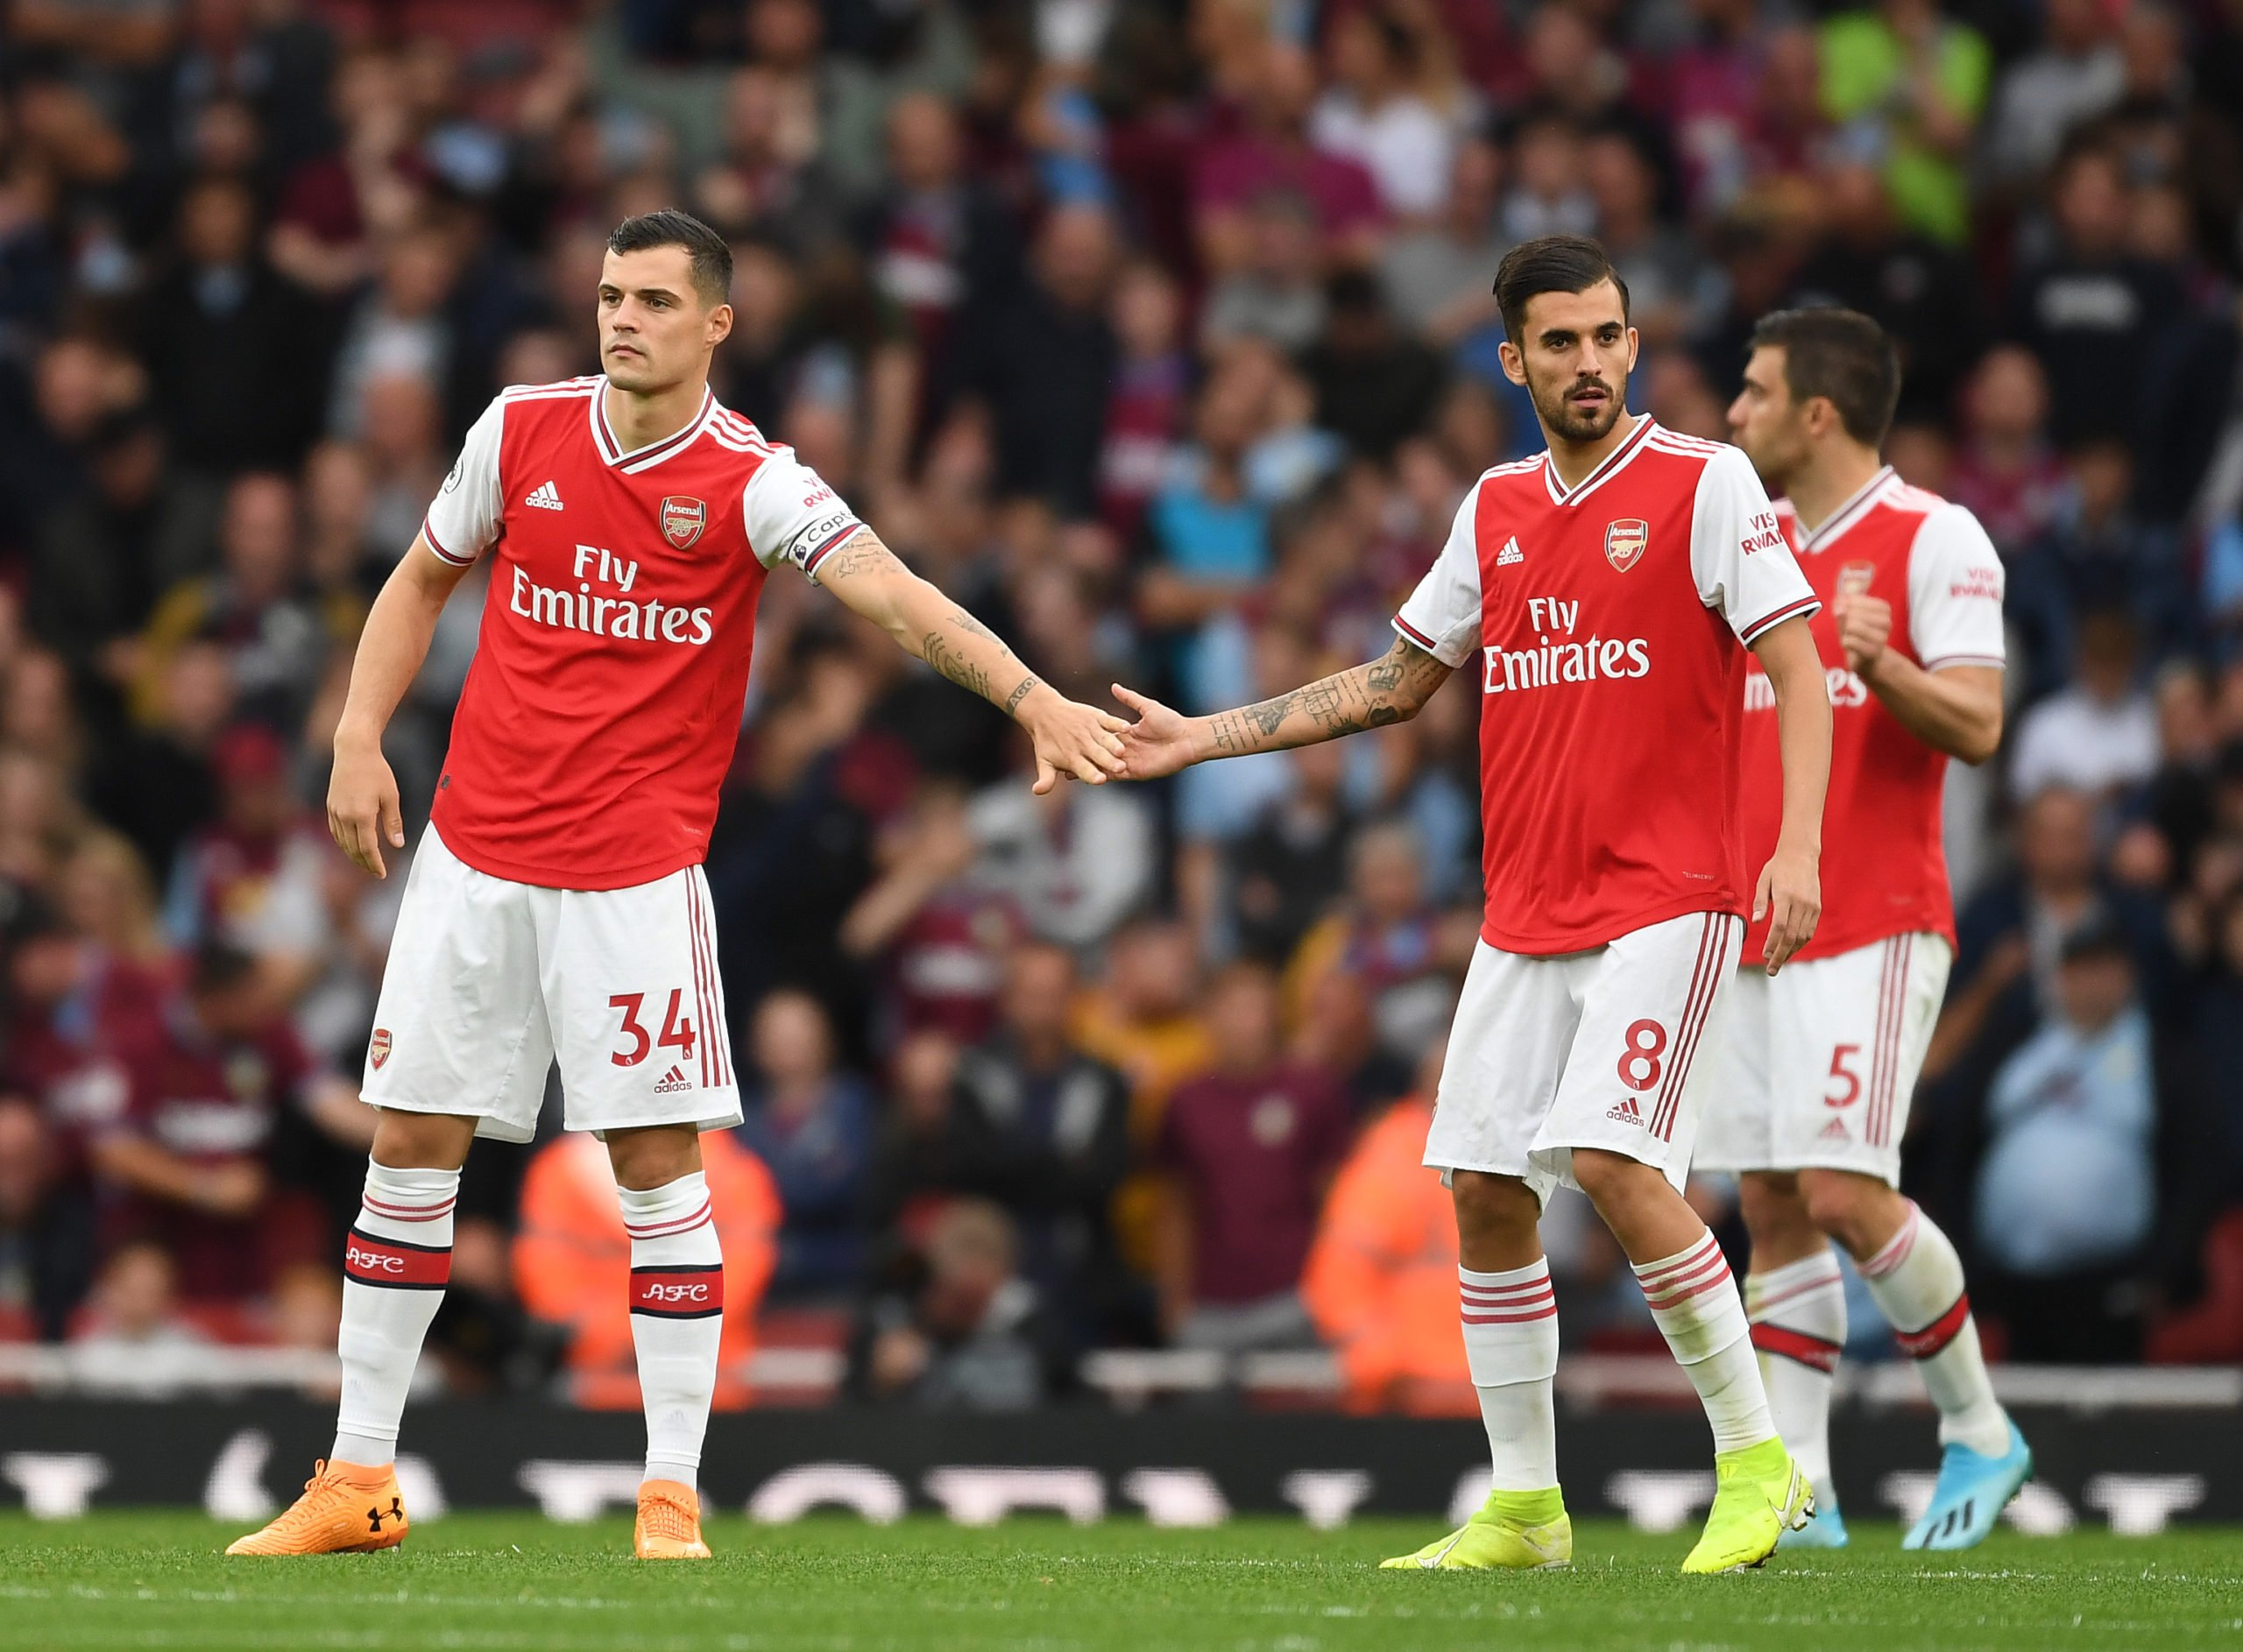 Arsenal FC v Aston Villa - Premier League